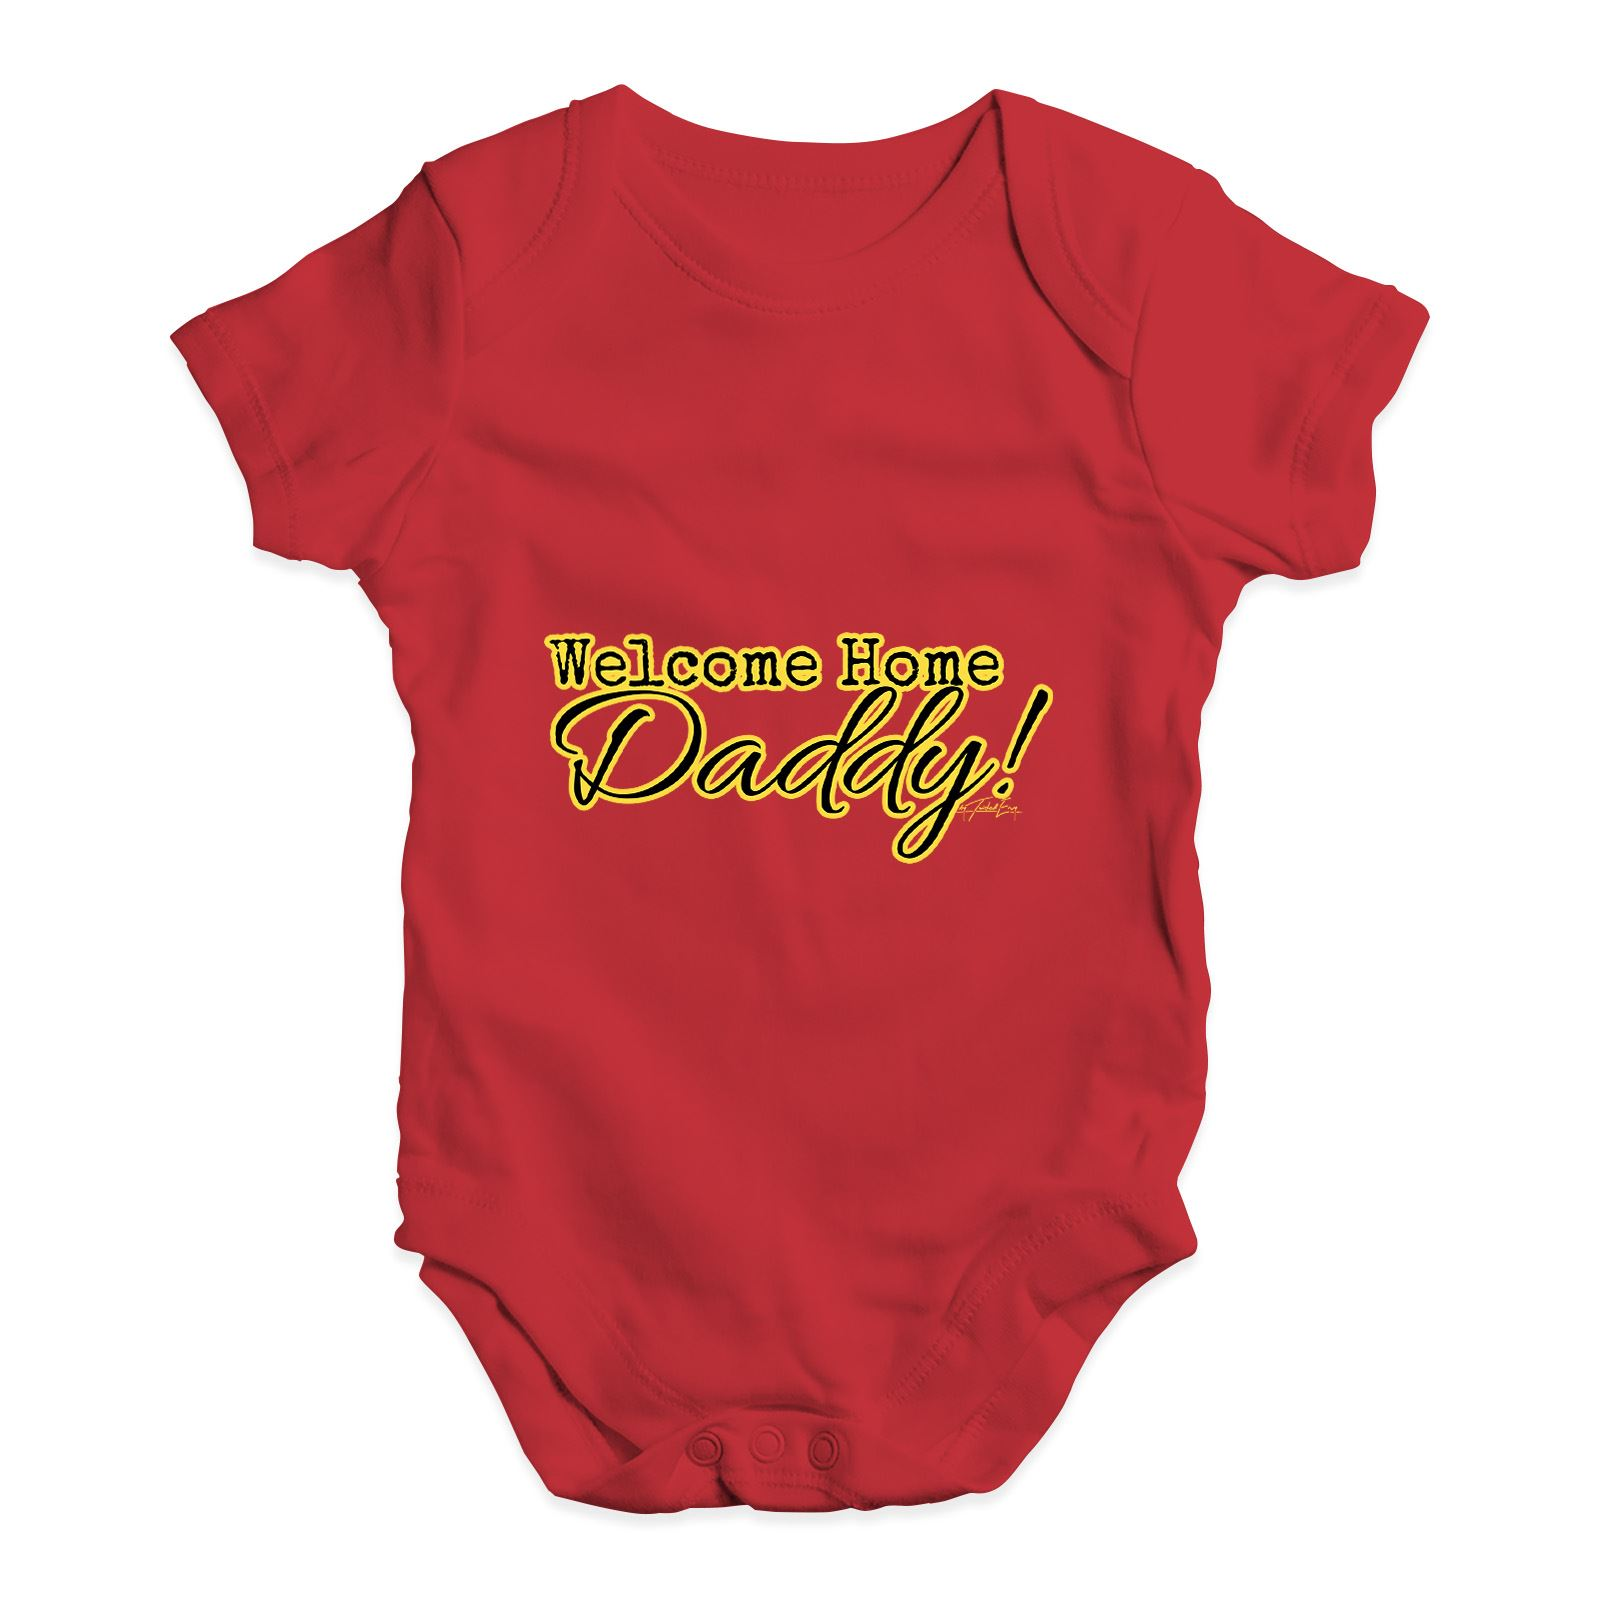 Twisted Envy Welcome Home Daddy Baby Unisex Funny Babygrow Bodysuit